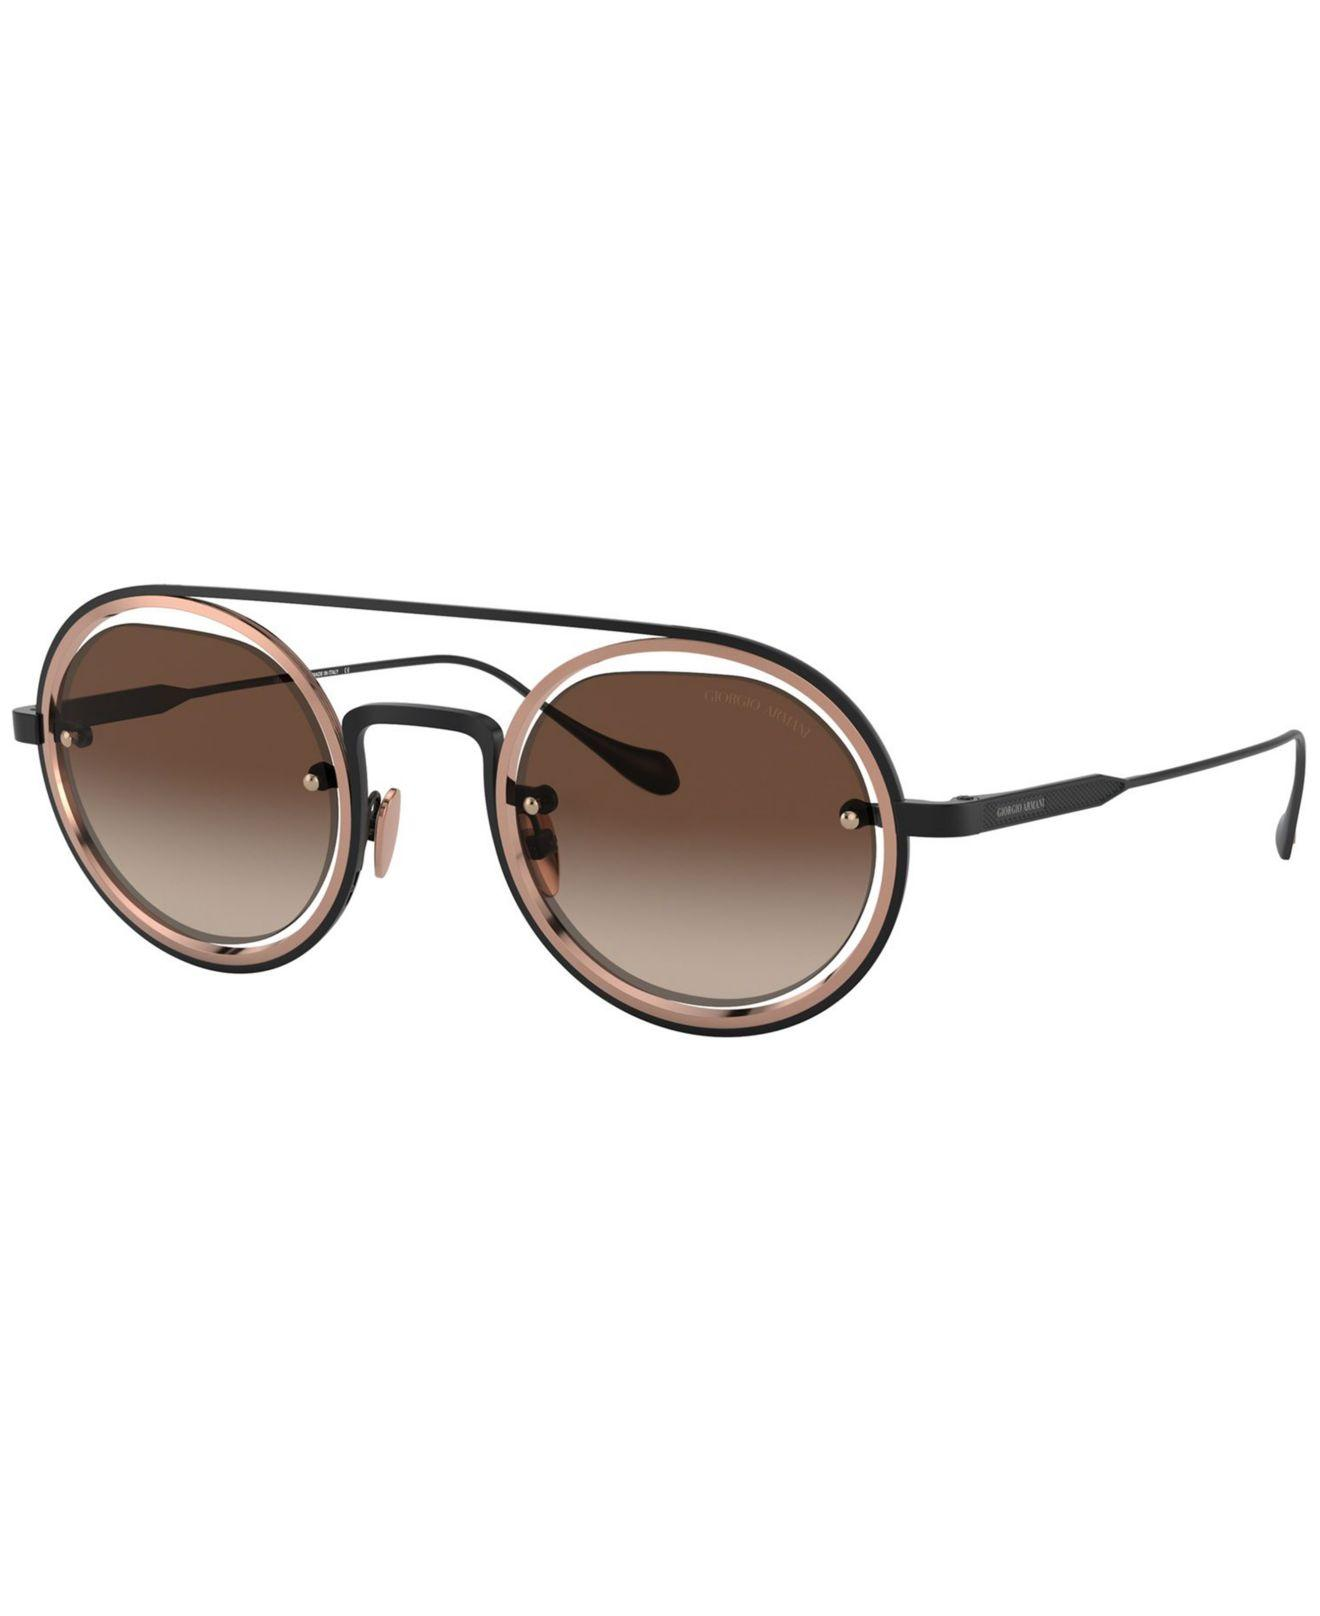 a210fac4abe Giorgio Armani. Women s Brown Sunglasses ...